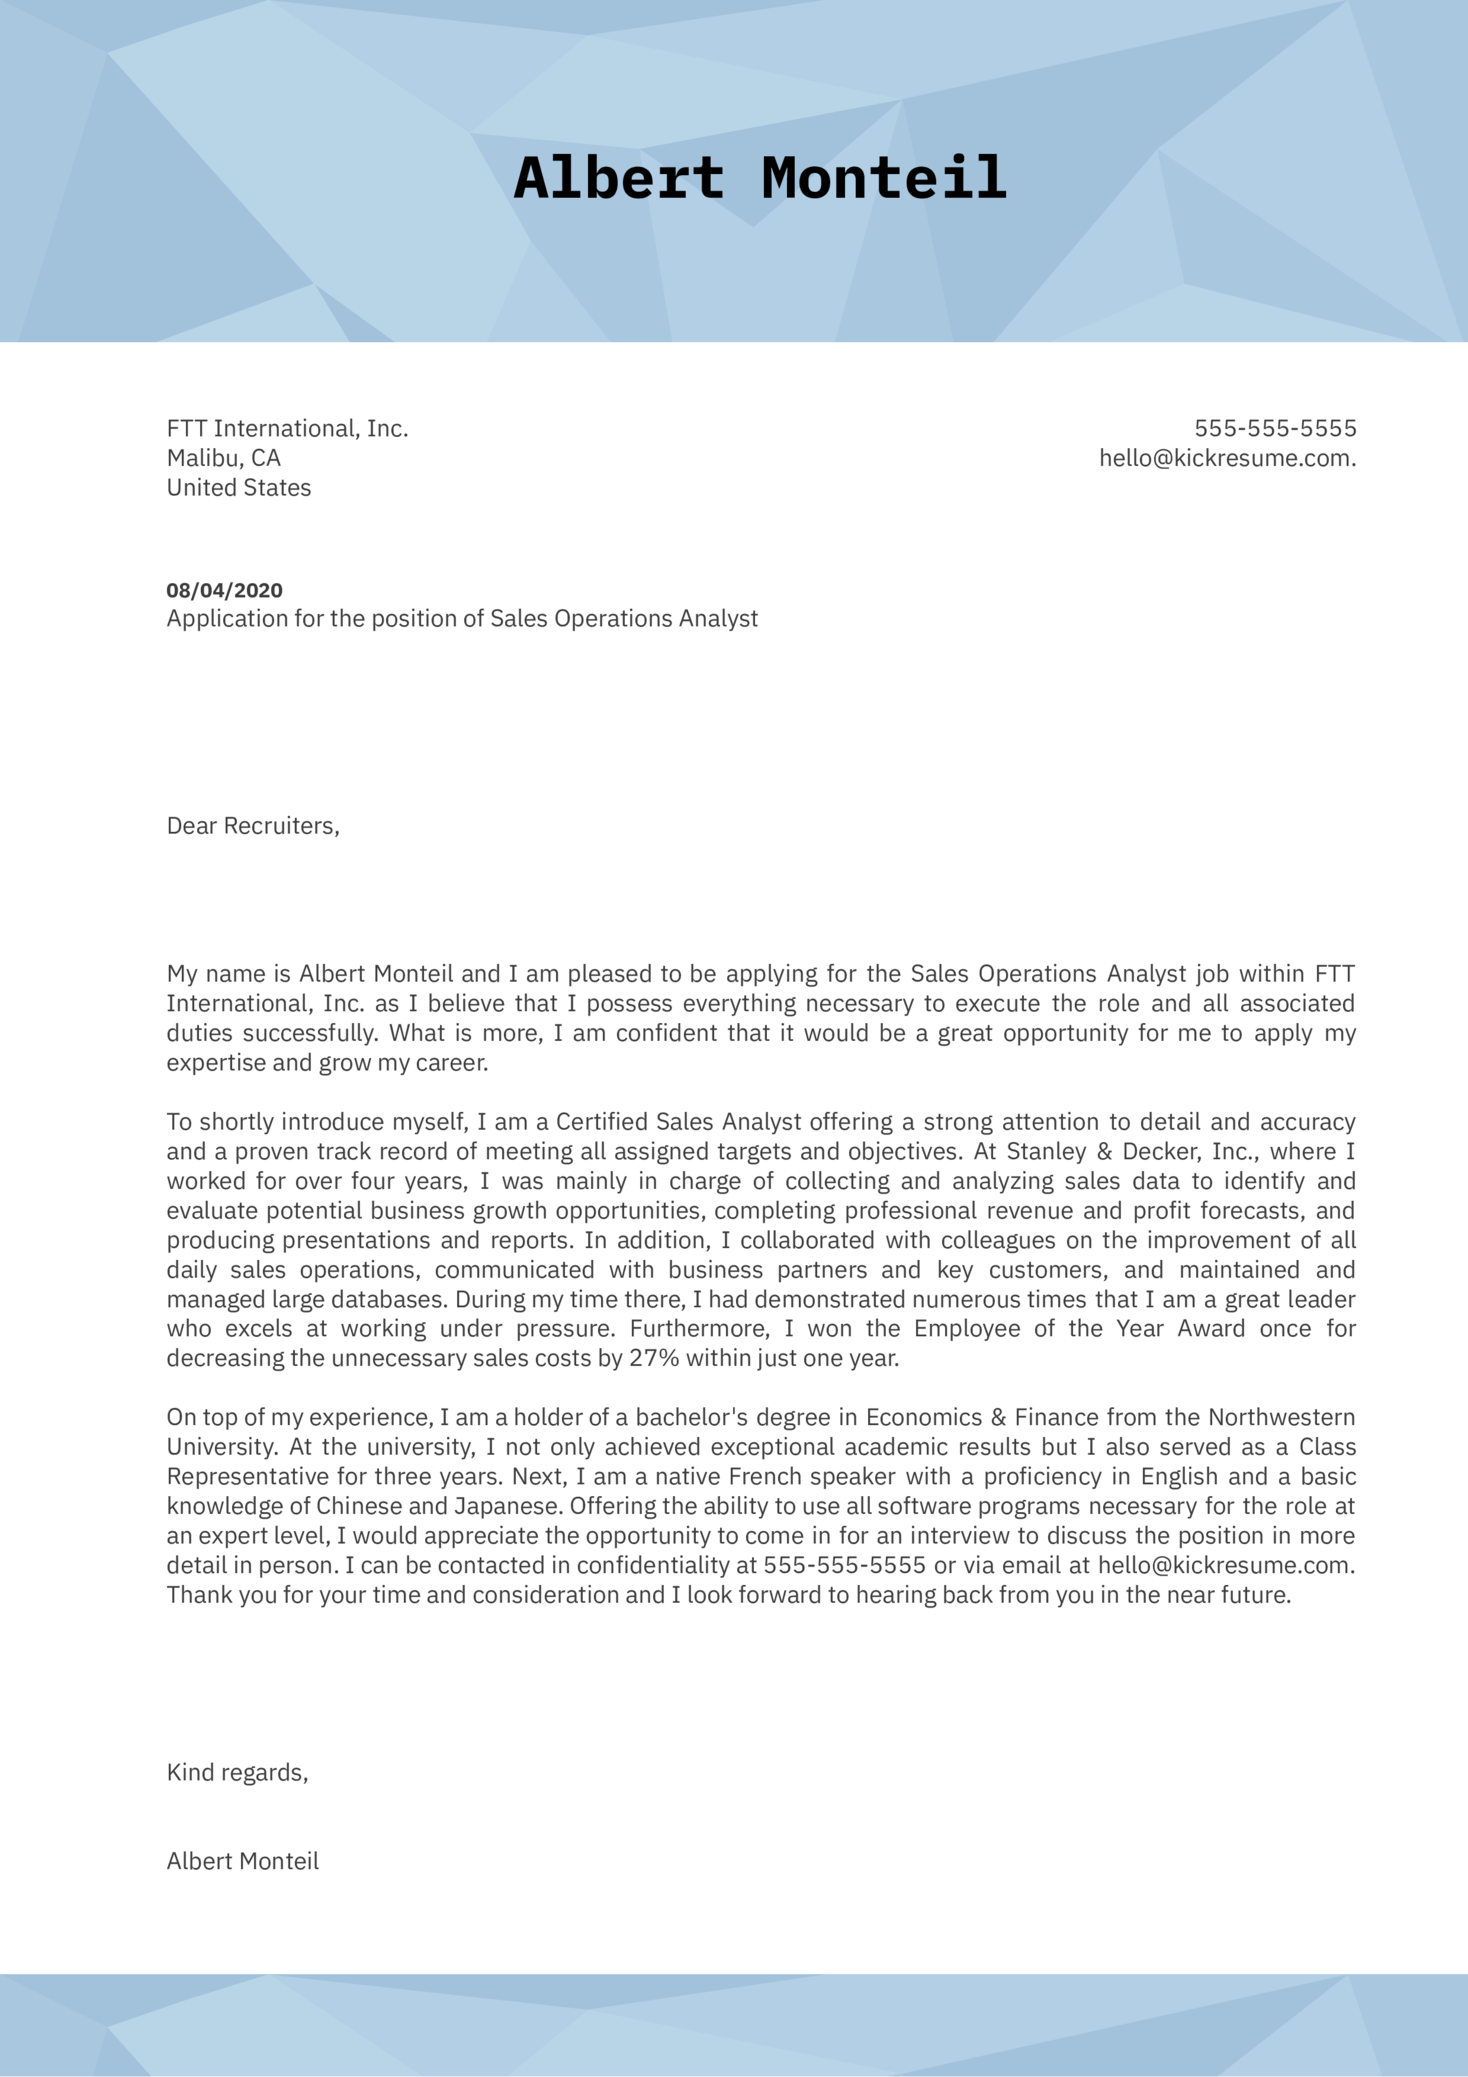 Sales Operations Analyst Cover Letter Example